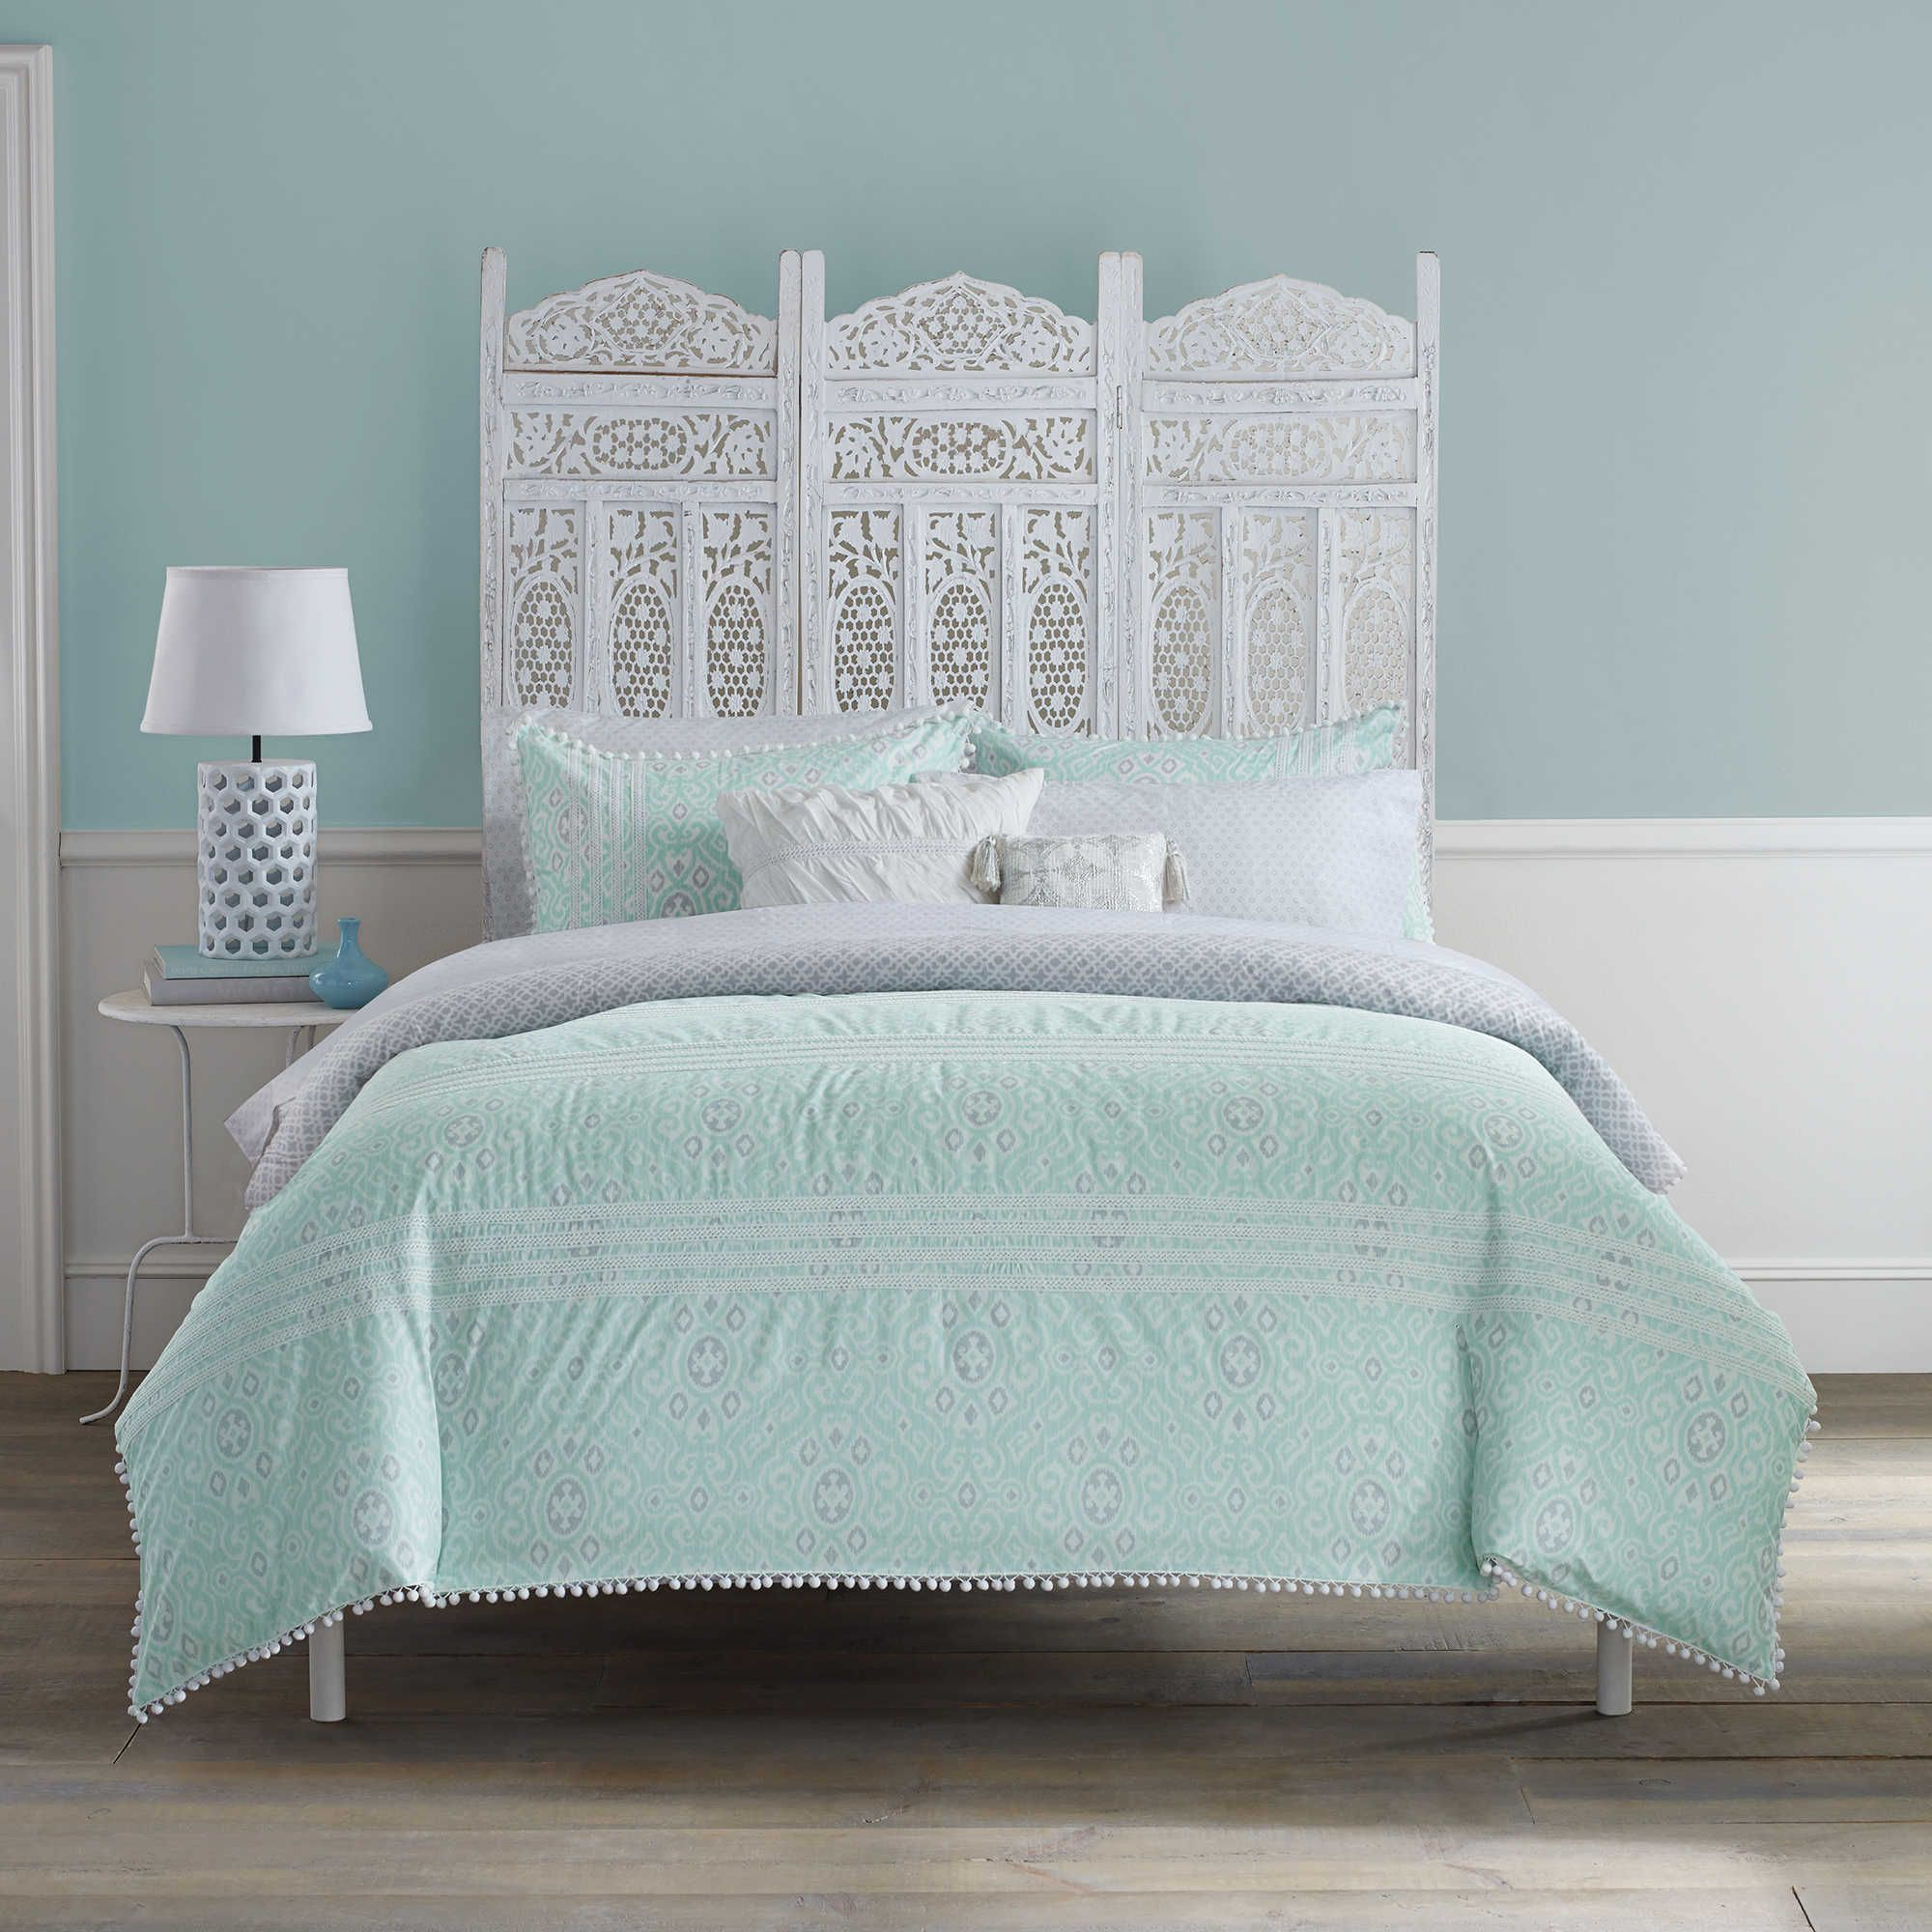 Anthology Moroccan Party Full 7 Piece Comforter Set In Mint Green